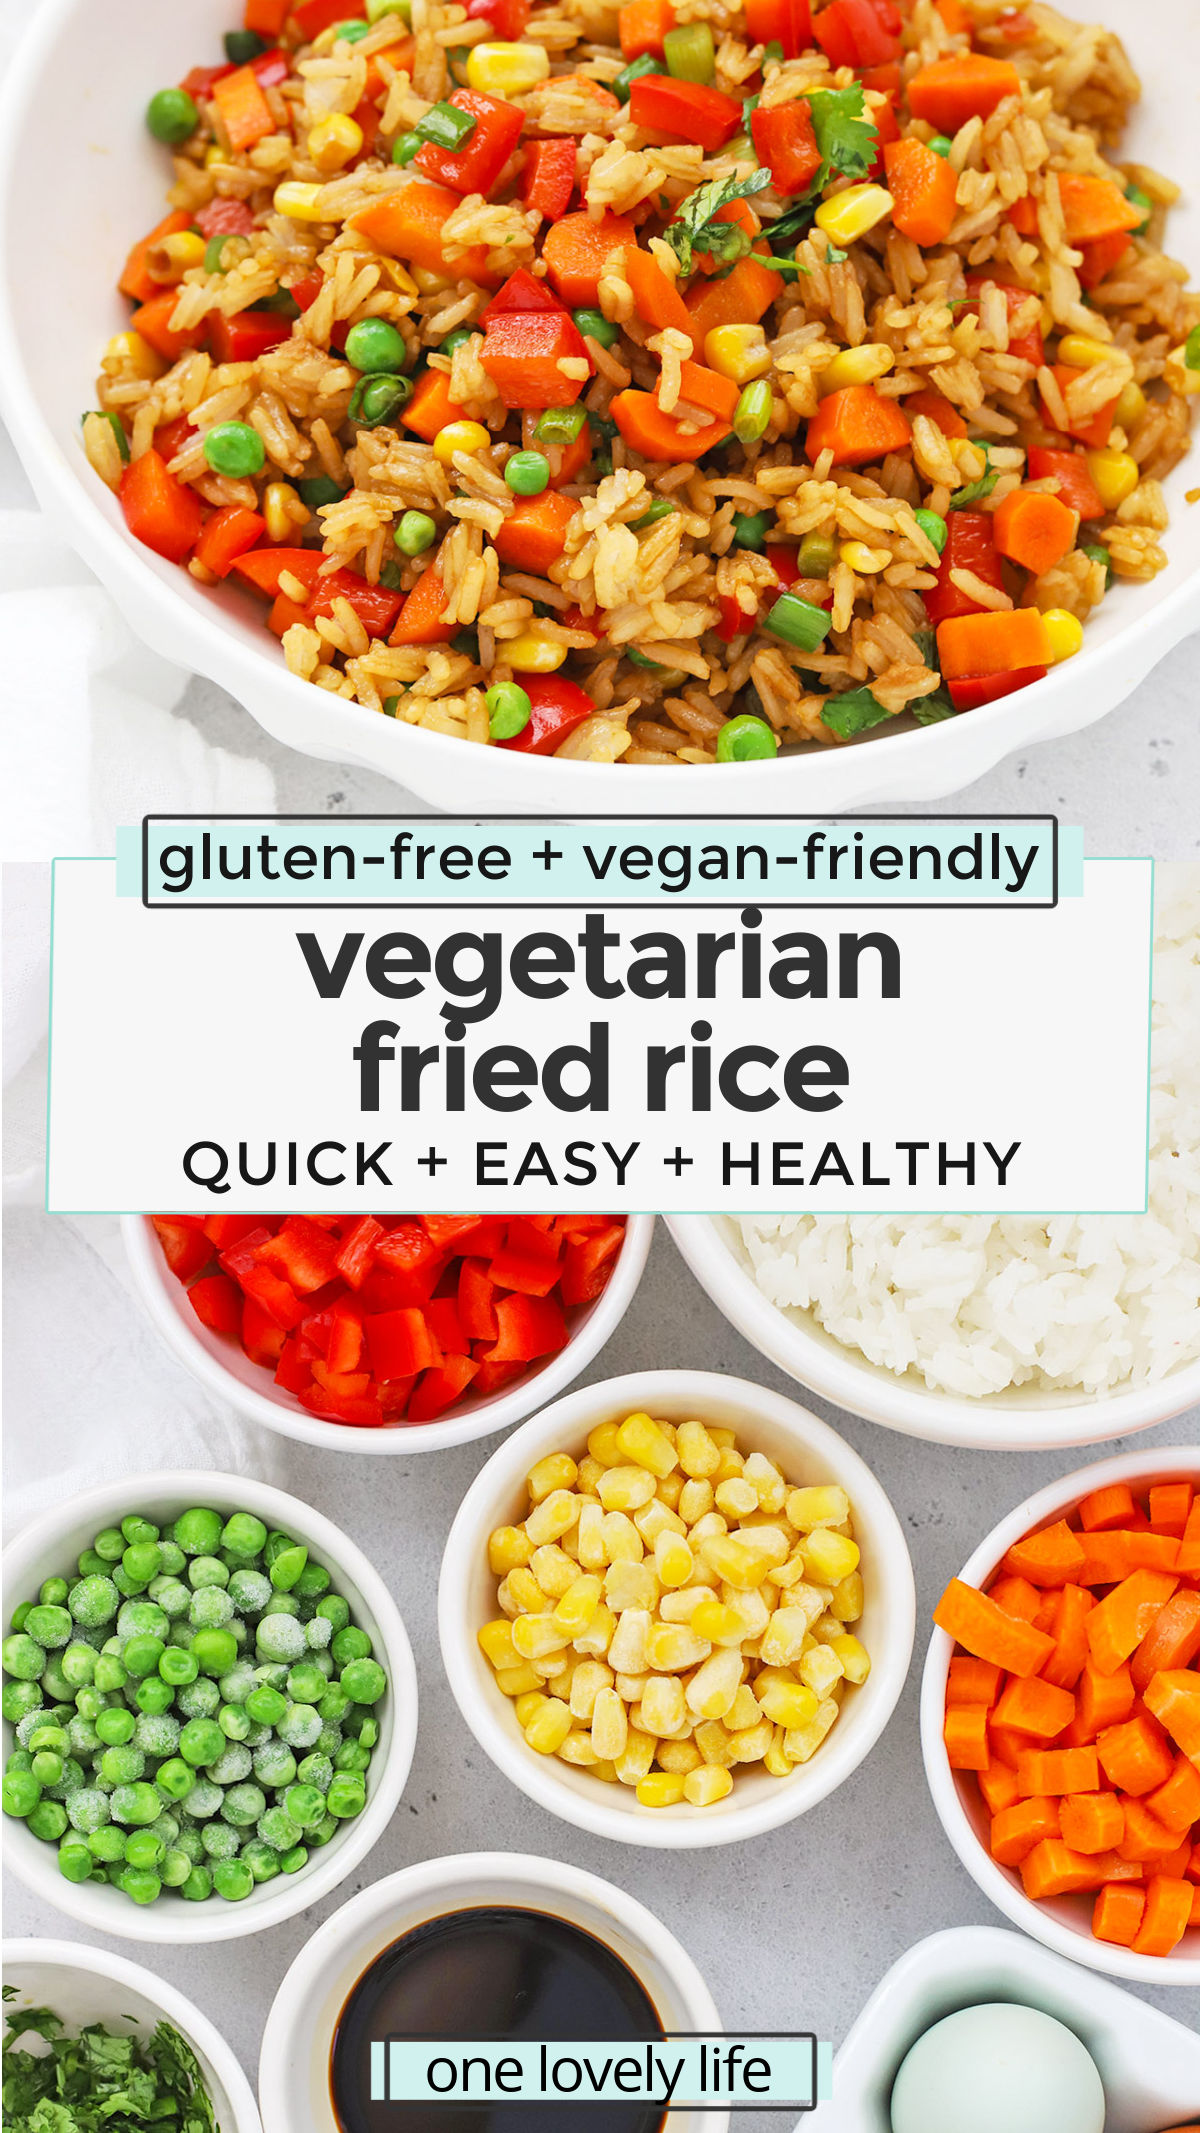 Vegetarian Fried Rice - This healthy fried rice recipe is loaded with colorful veggies and delicious flavor. Serve as a side with all your favorites! (Vegan-Friendly, Gluten-Free) // Vegan Fried Rice // Gluten Free Fried Rice // Easy Dinner // Quick Dinner // Take Out Fake Out // Takeout Copycat Fried Rice #friedrice #vegetarian #glutenfree #vegan